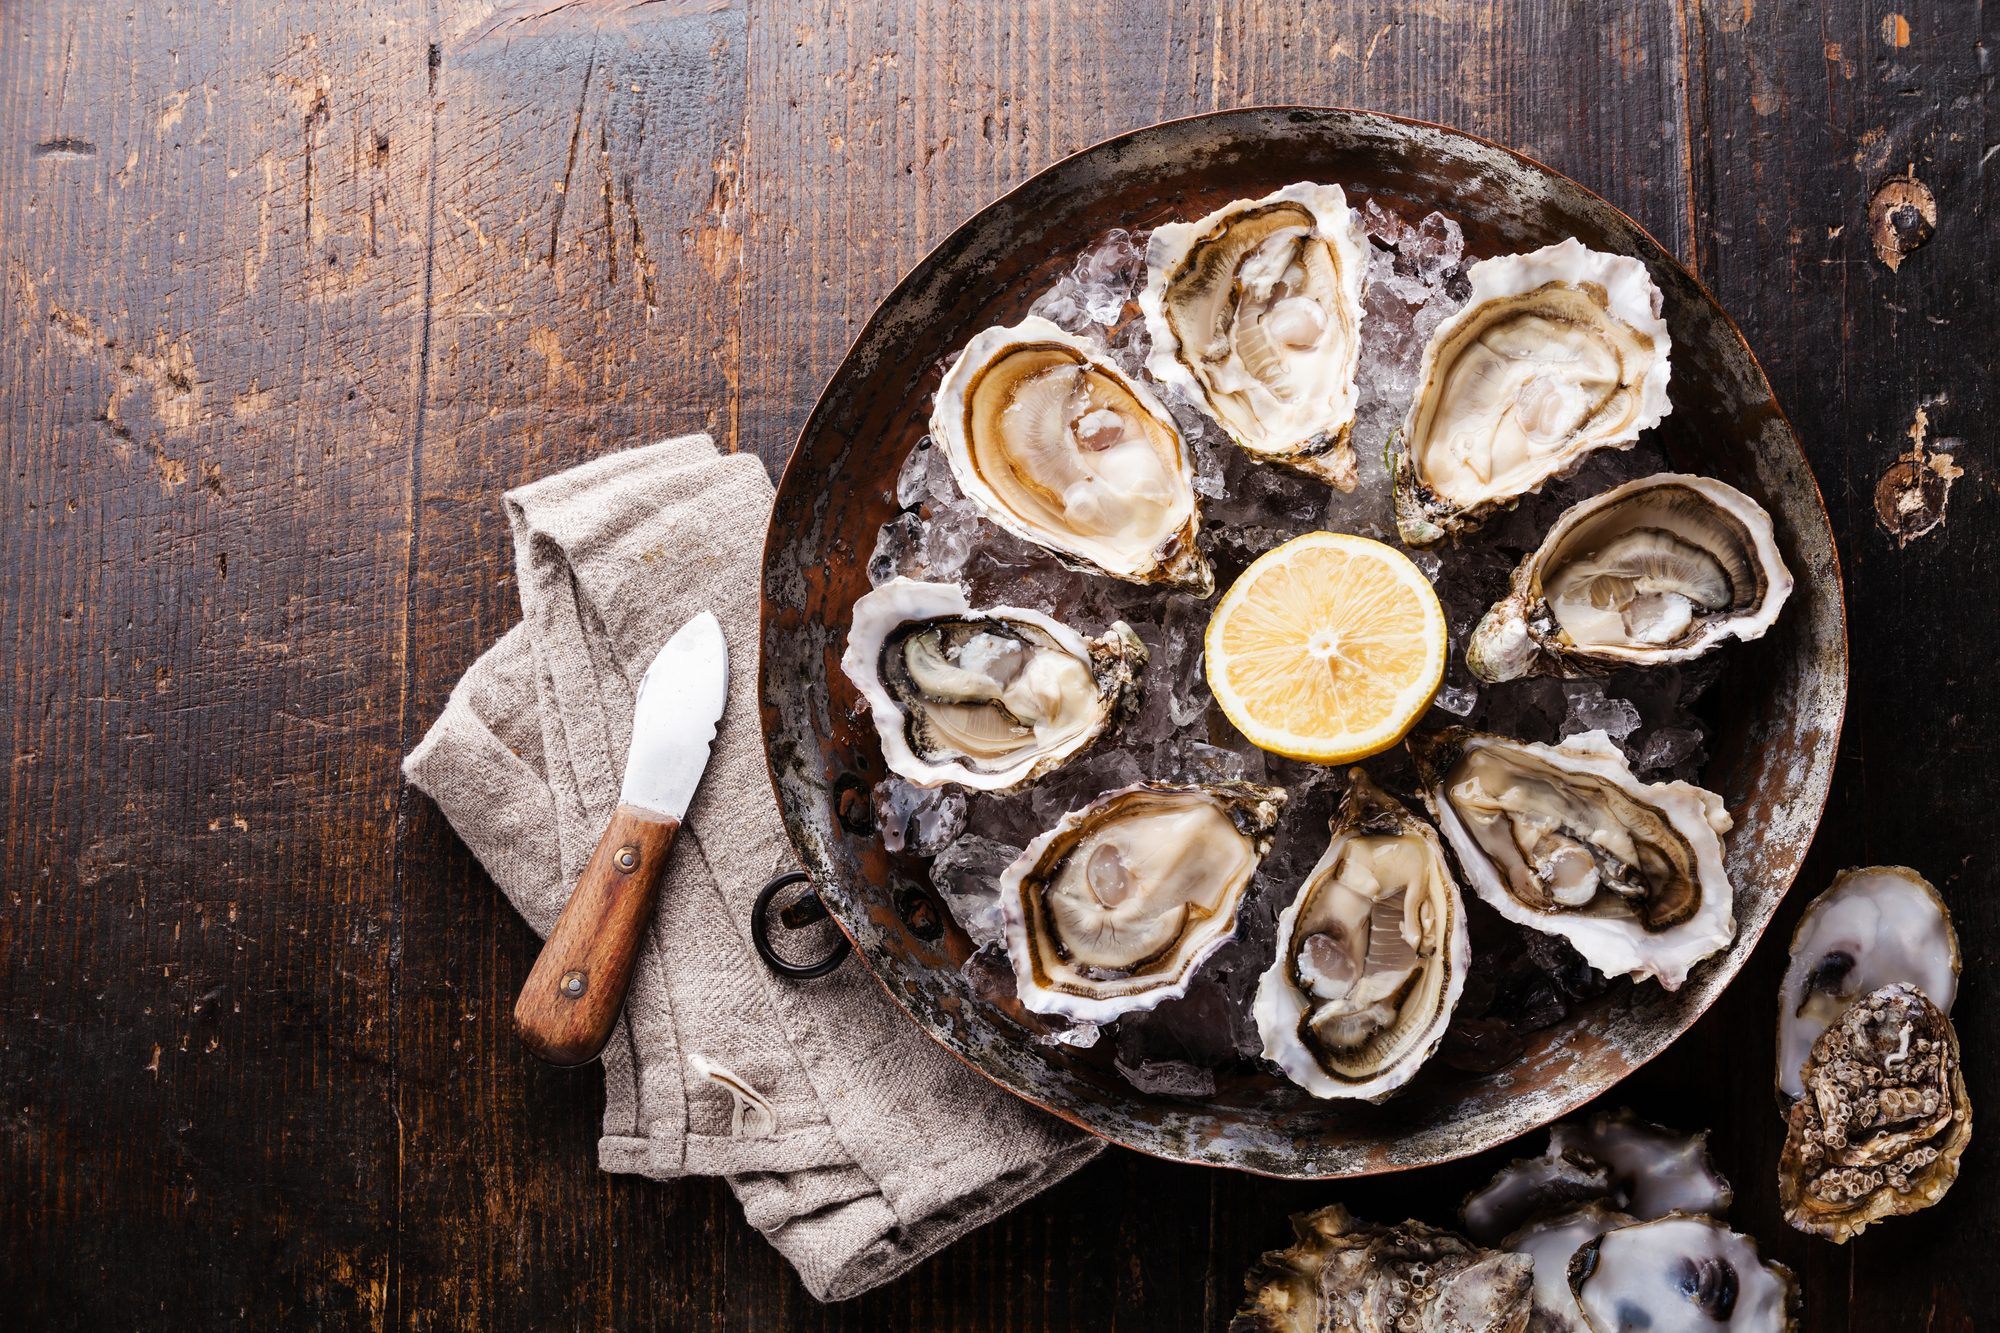 Fresh raw oysters on ice with lemon on a rustic table top